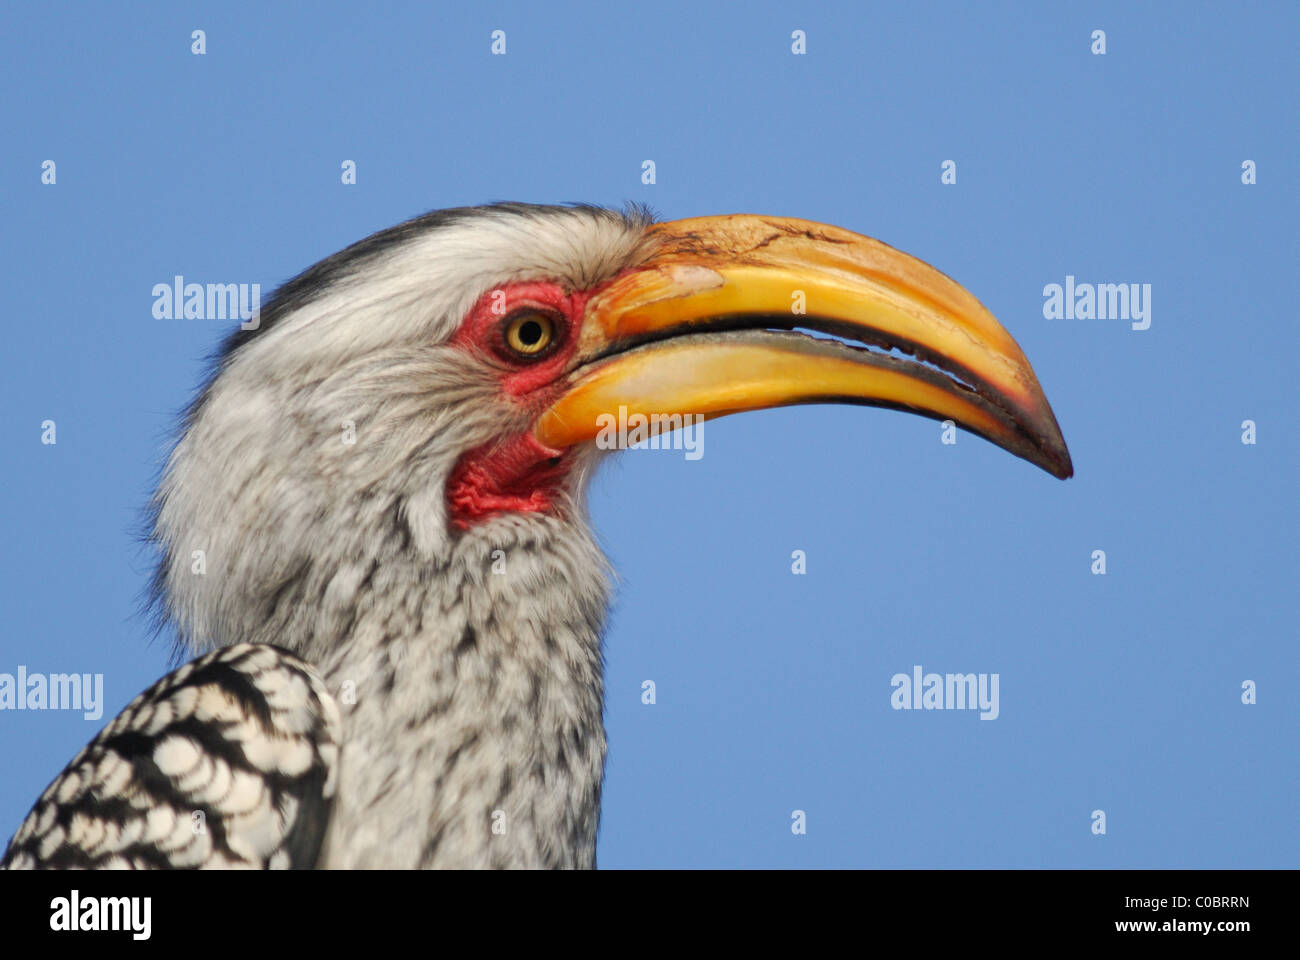 Southern Yellow-billed Hornbill (Tockus leucomelas) in Kruger National Park, South Africa. - Stock Image